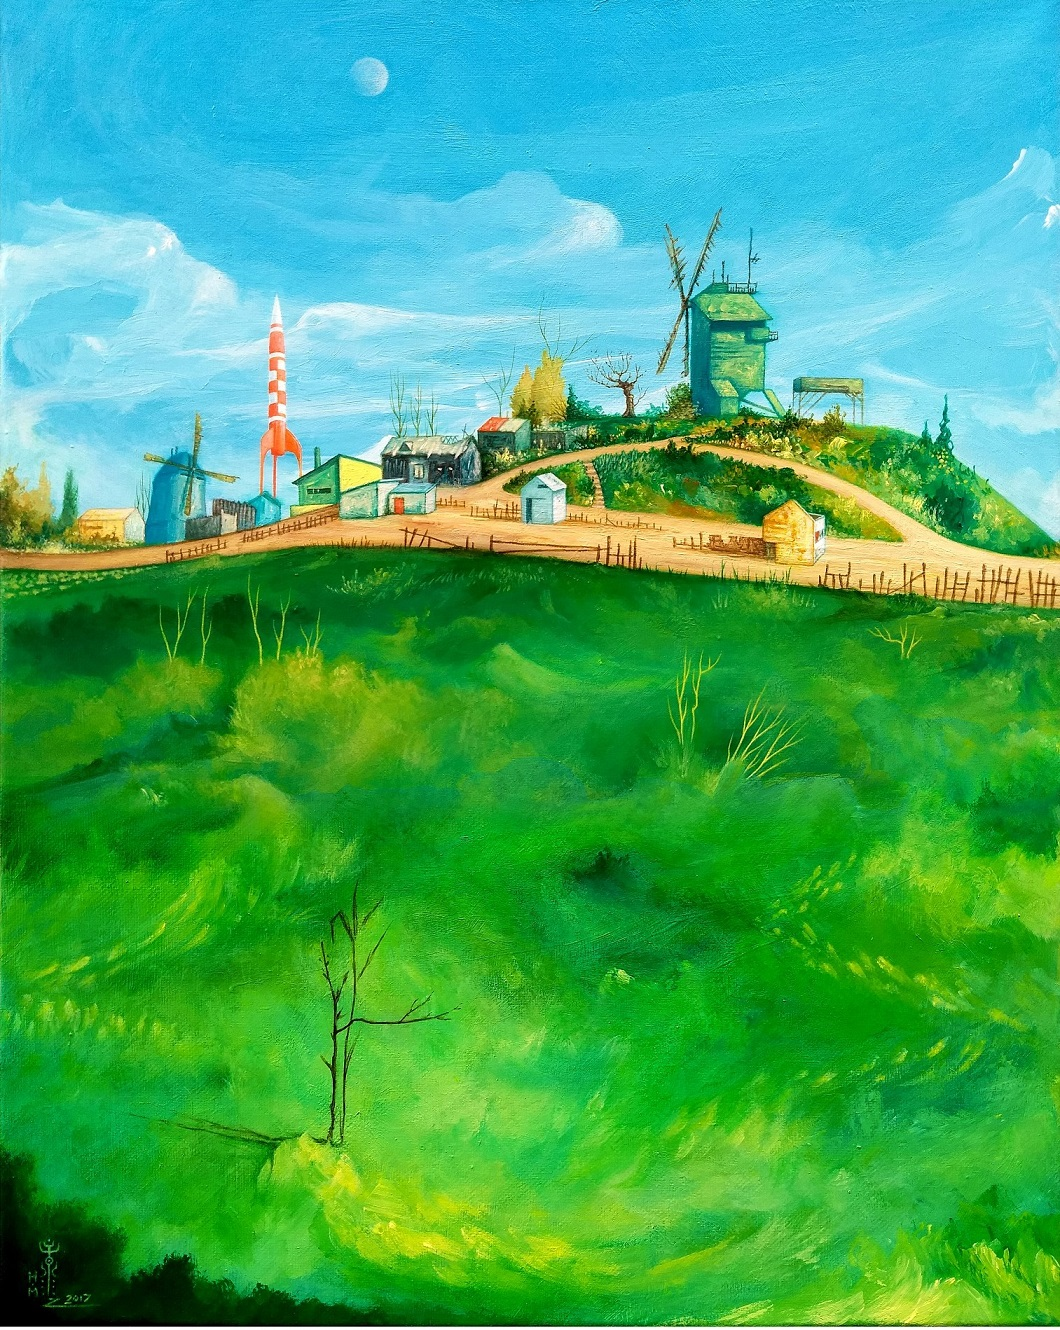 Moulin de la Galette (after Vincent Van Gogh)